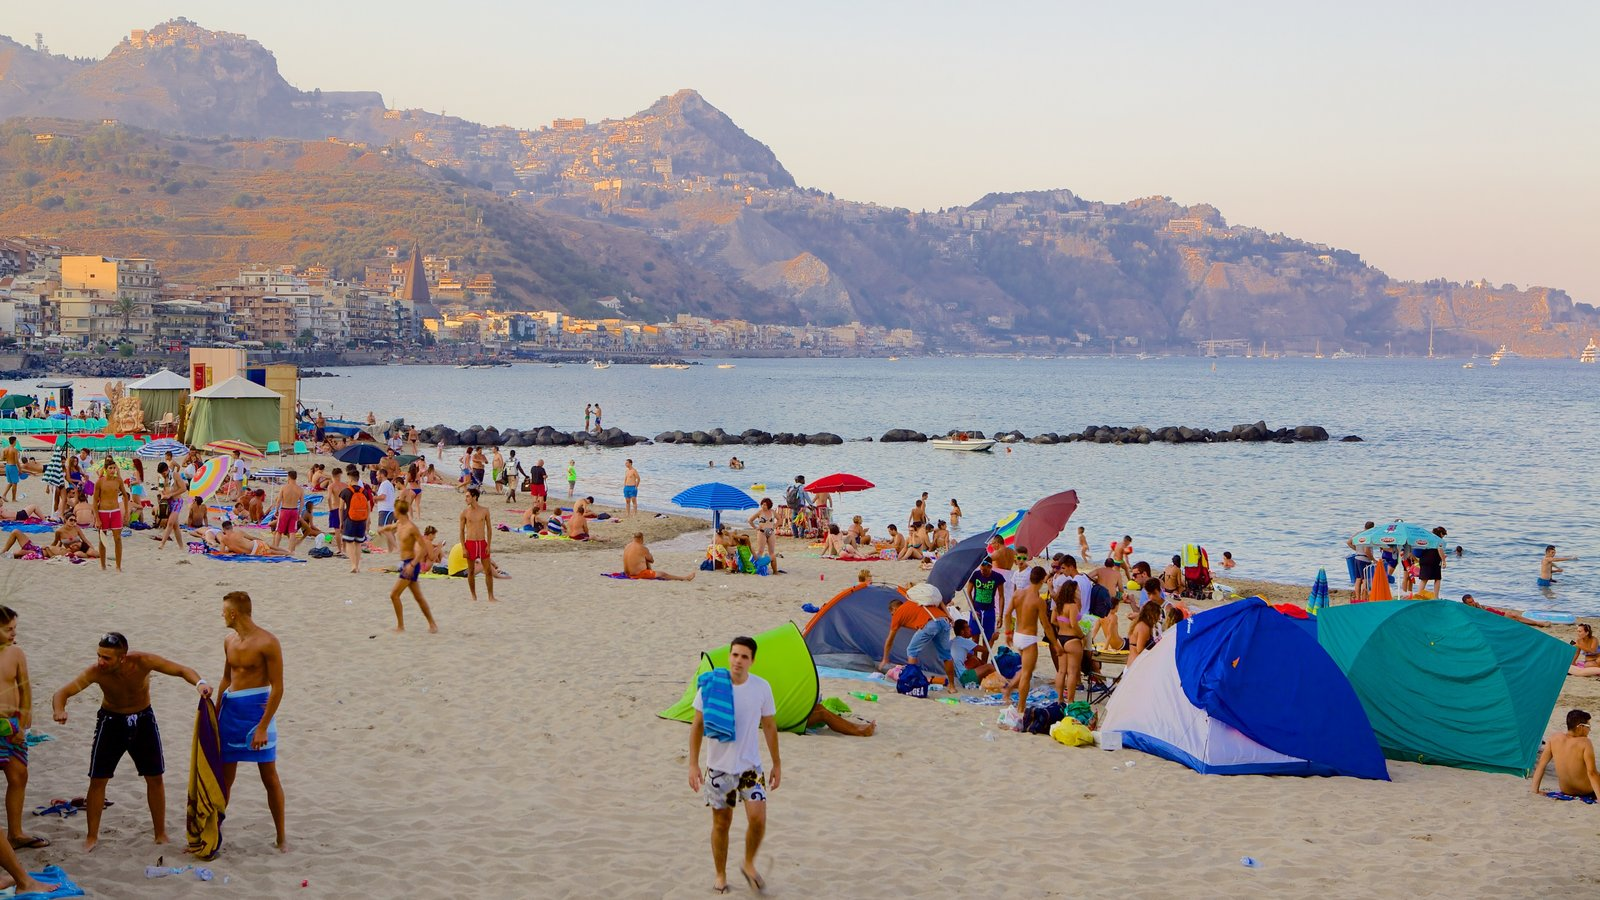 Giardini Naxos which includes a beach as well as a large group of people